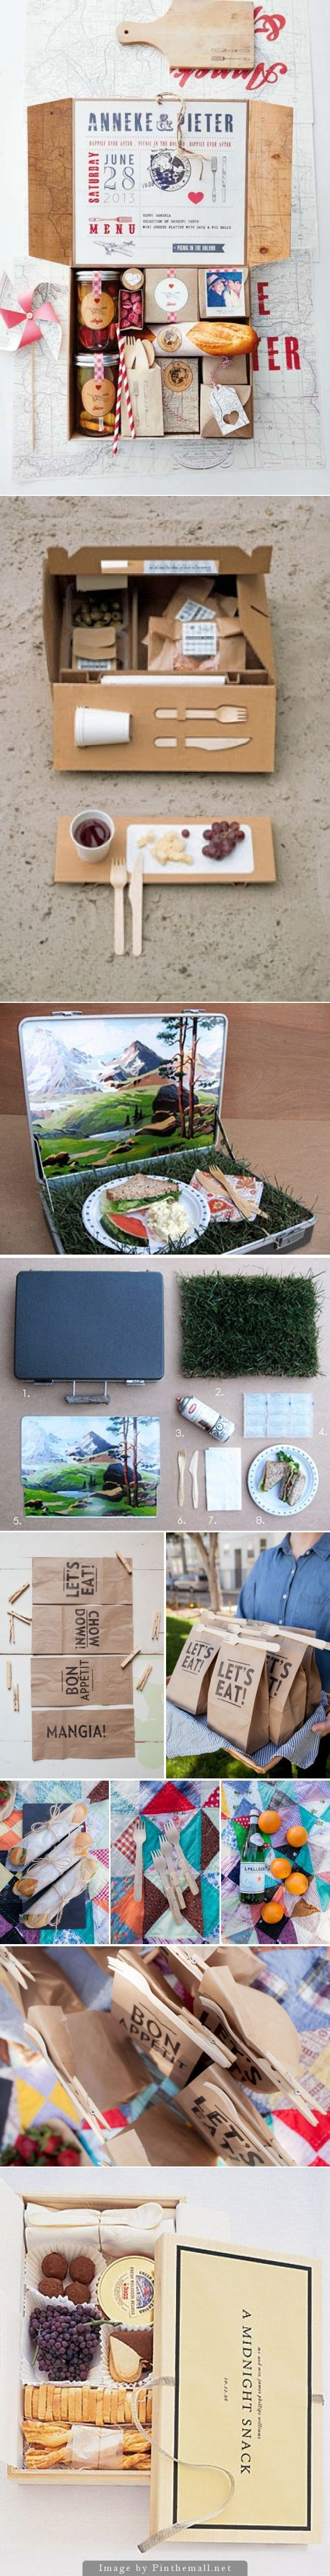 Happy #July4th lets all go on a #picnic #packaging curated via Packaging Diva PD created via http://pinterest.com/packagingdiva